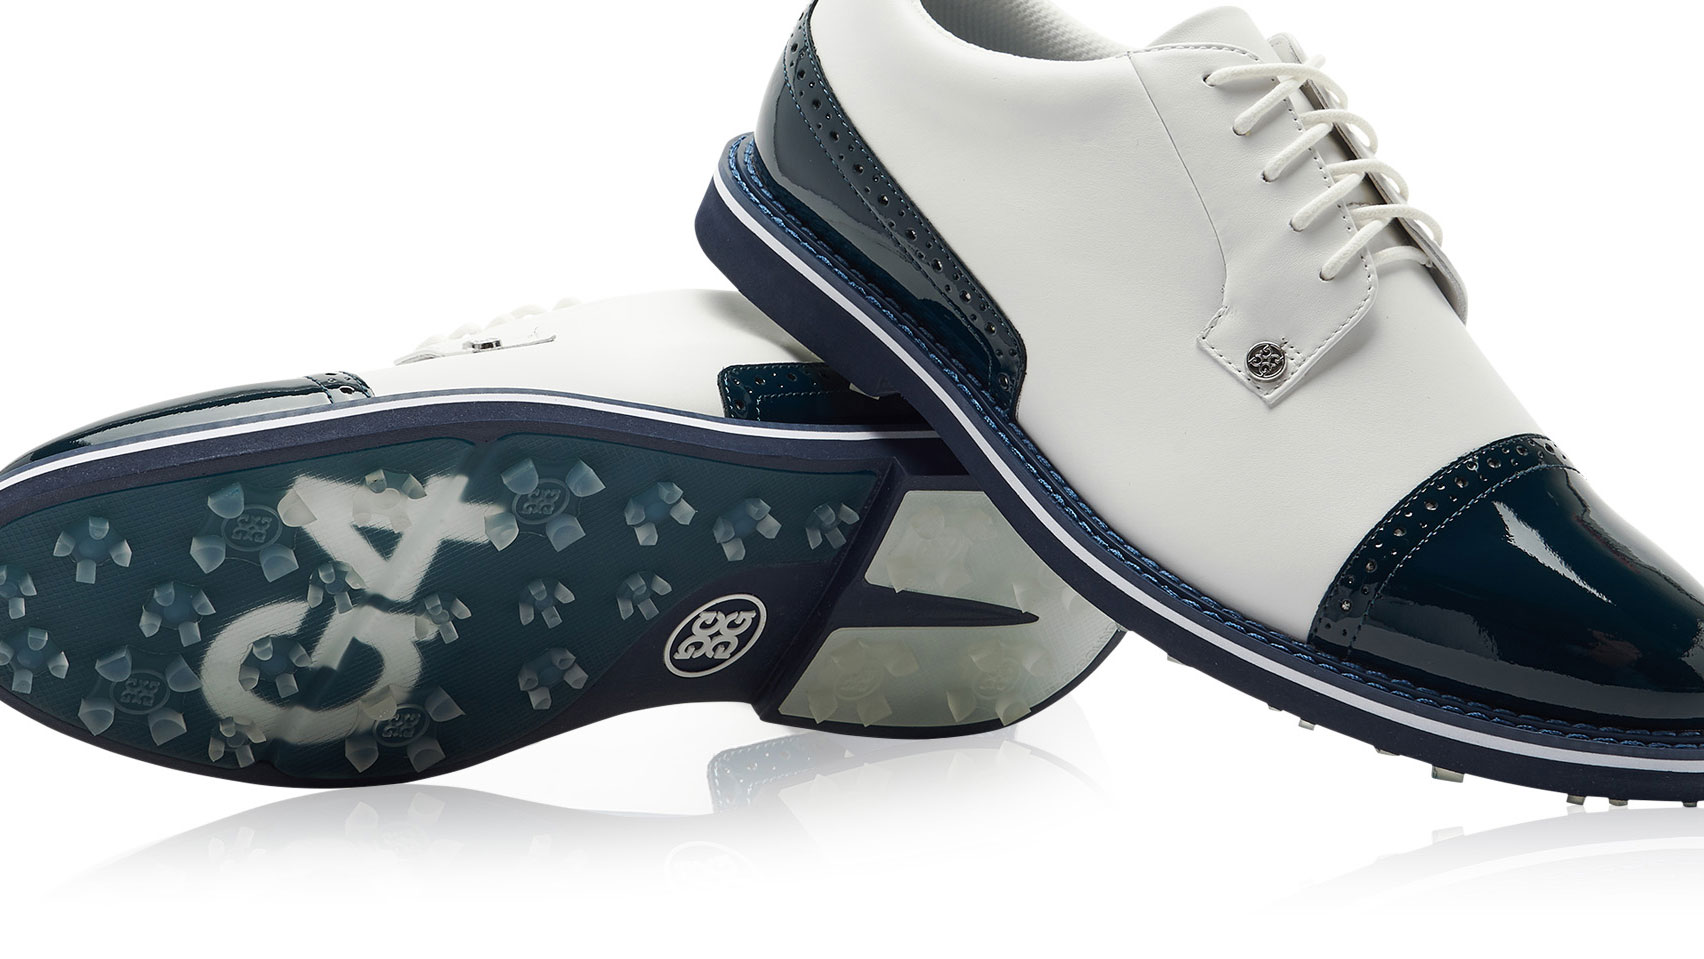 Looking Ahead and Looking Stylish: Finding the Best Golf Shoe for You